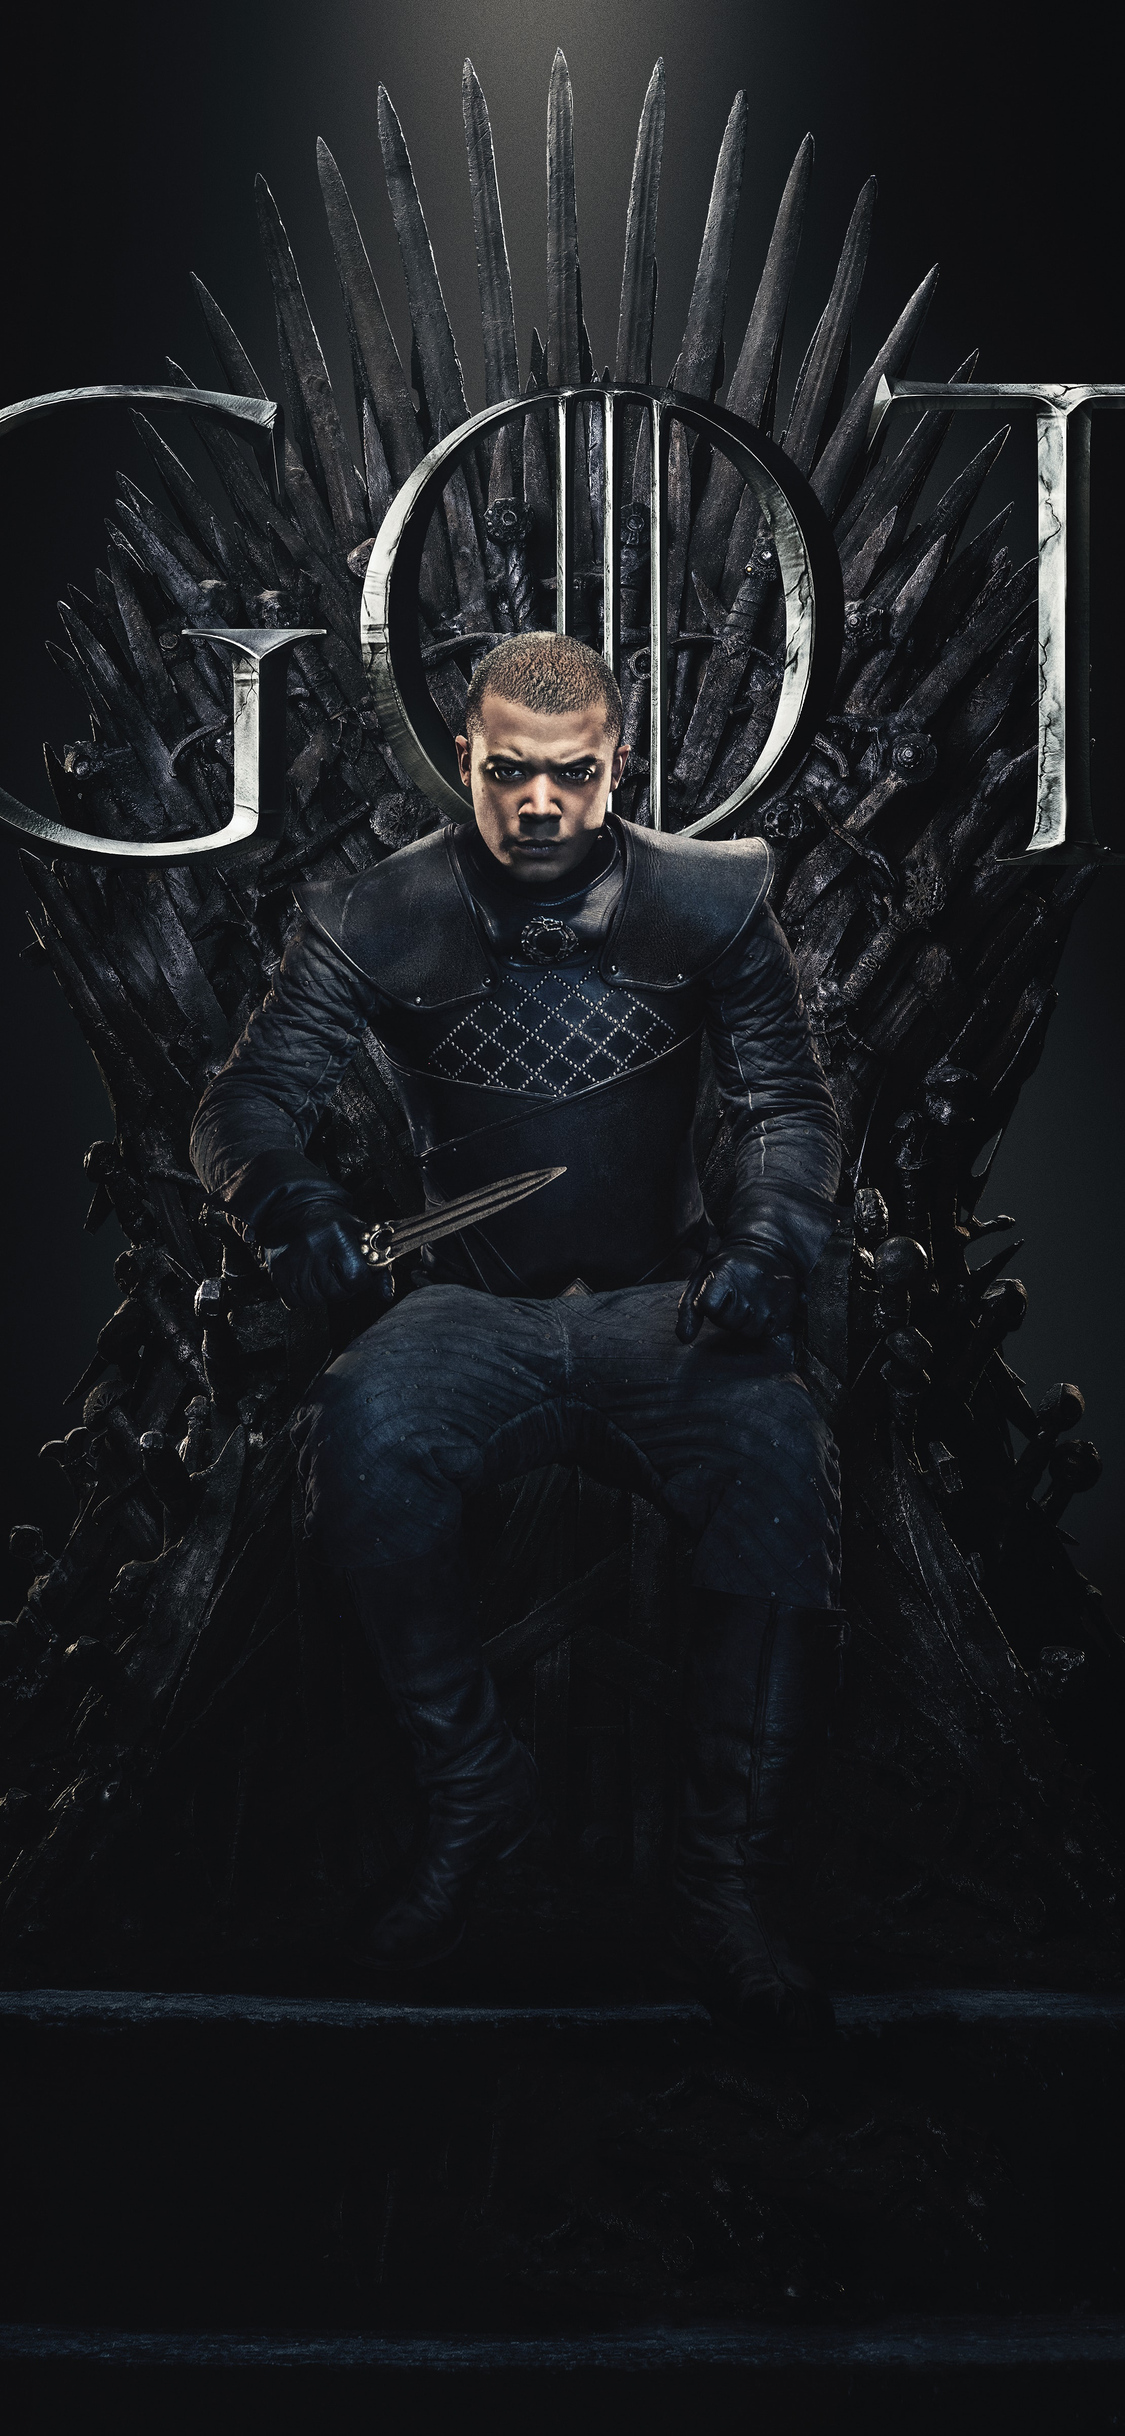 1125x2436 Grey Worm Game Of Thrones Season 8 Poster Iphone